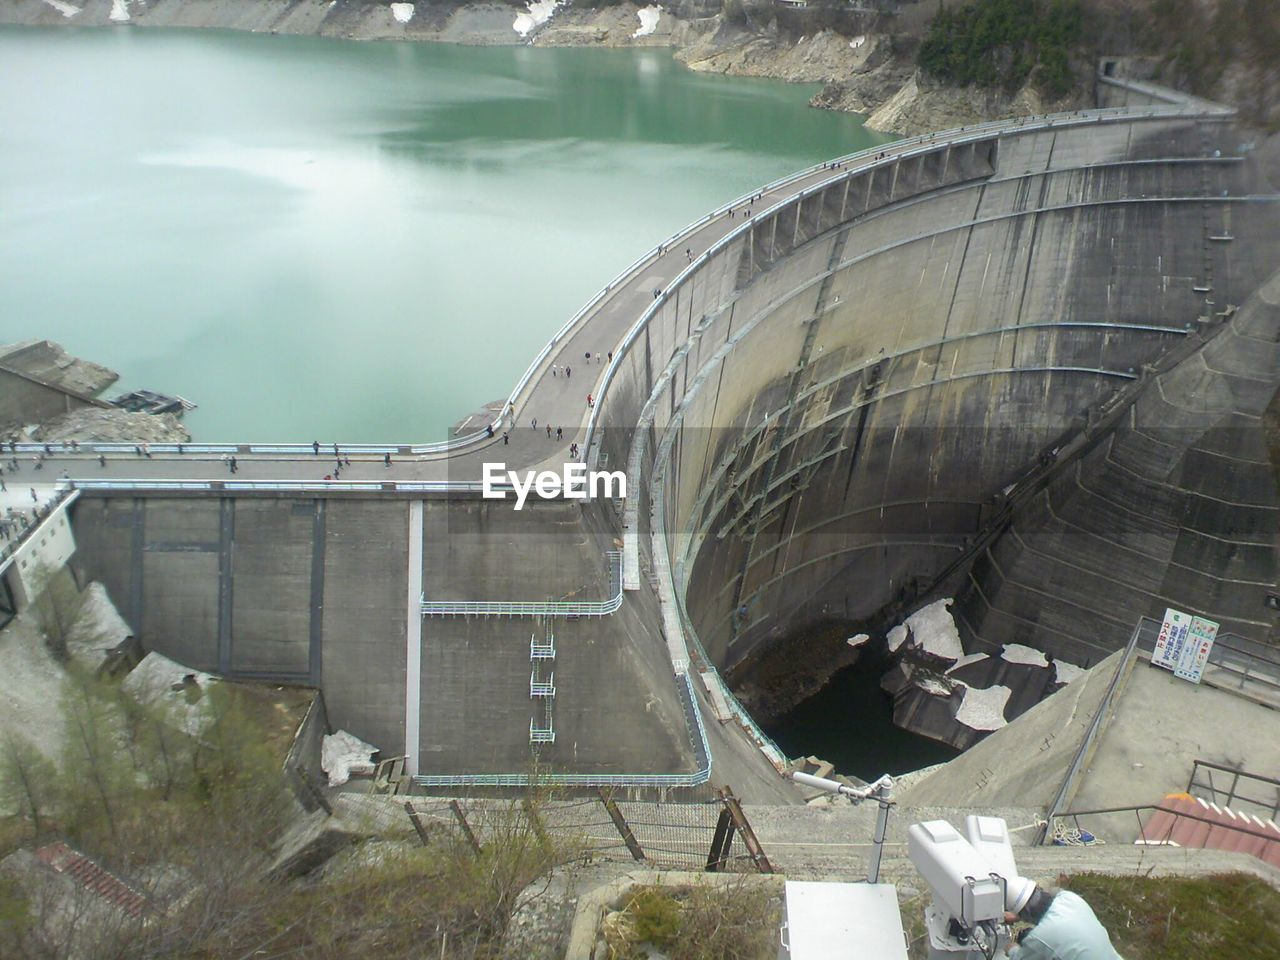 water, architecture, dam, day, nature, built structure, high angle view, no people, hydroelectric power, reservoir, lake, plant, outdoors, building exterior, transportation, tree, travel, reflection, travel destinations